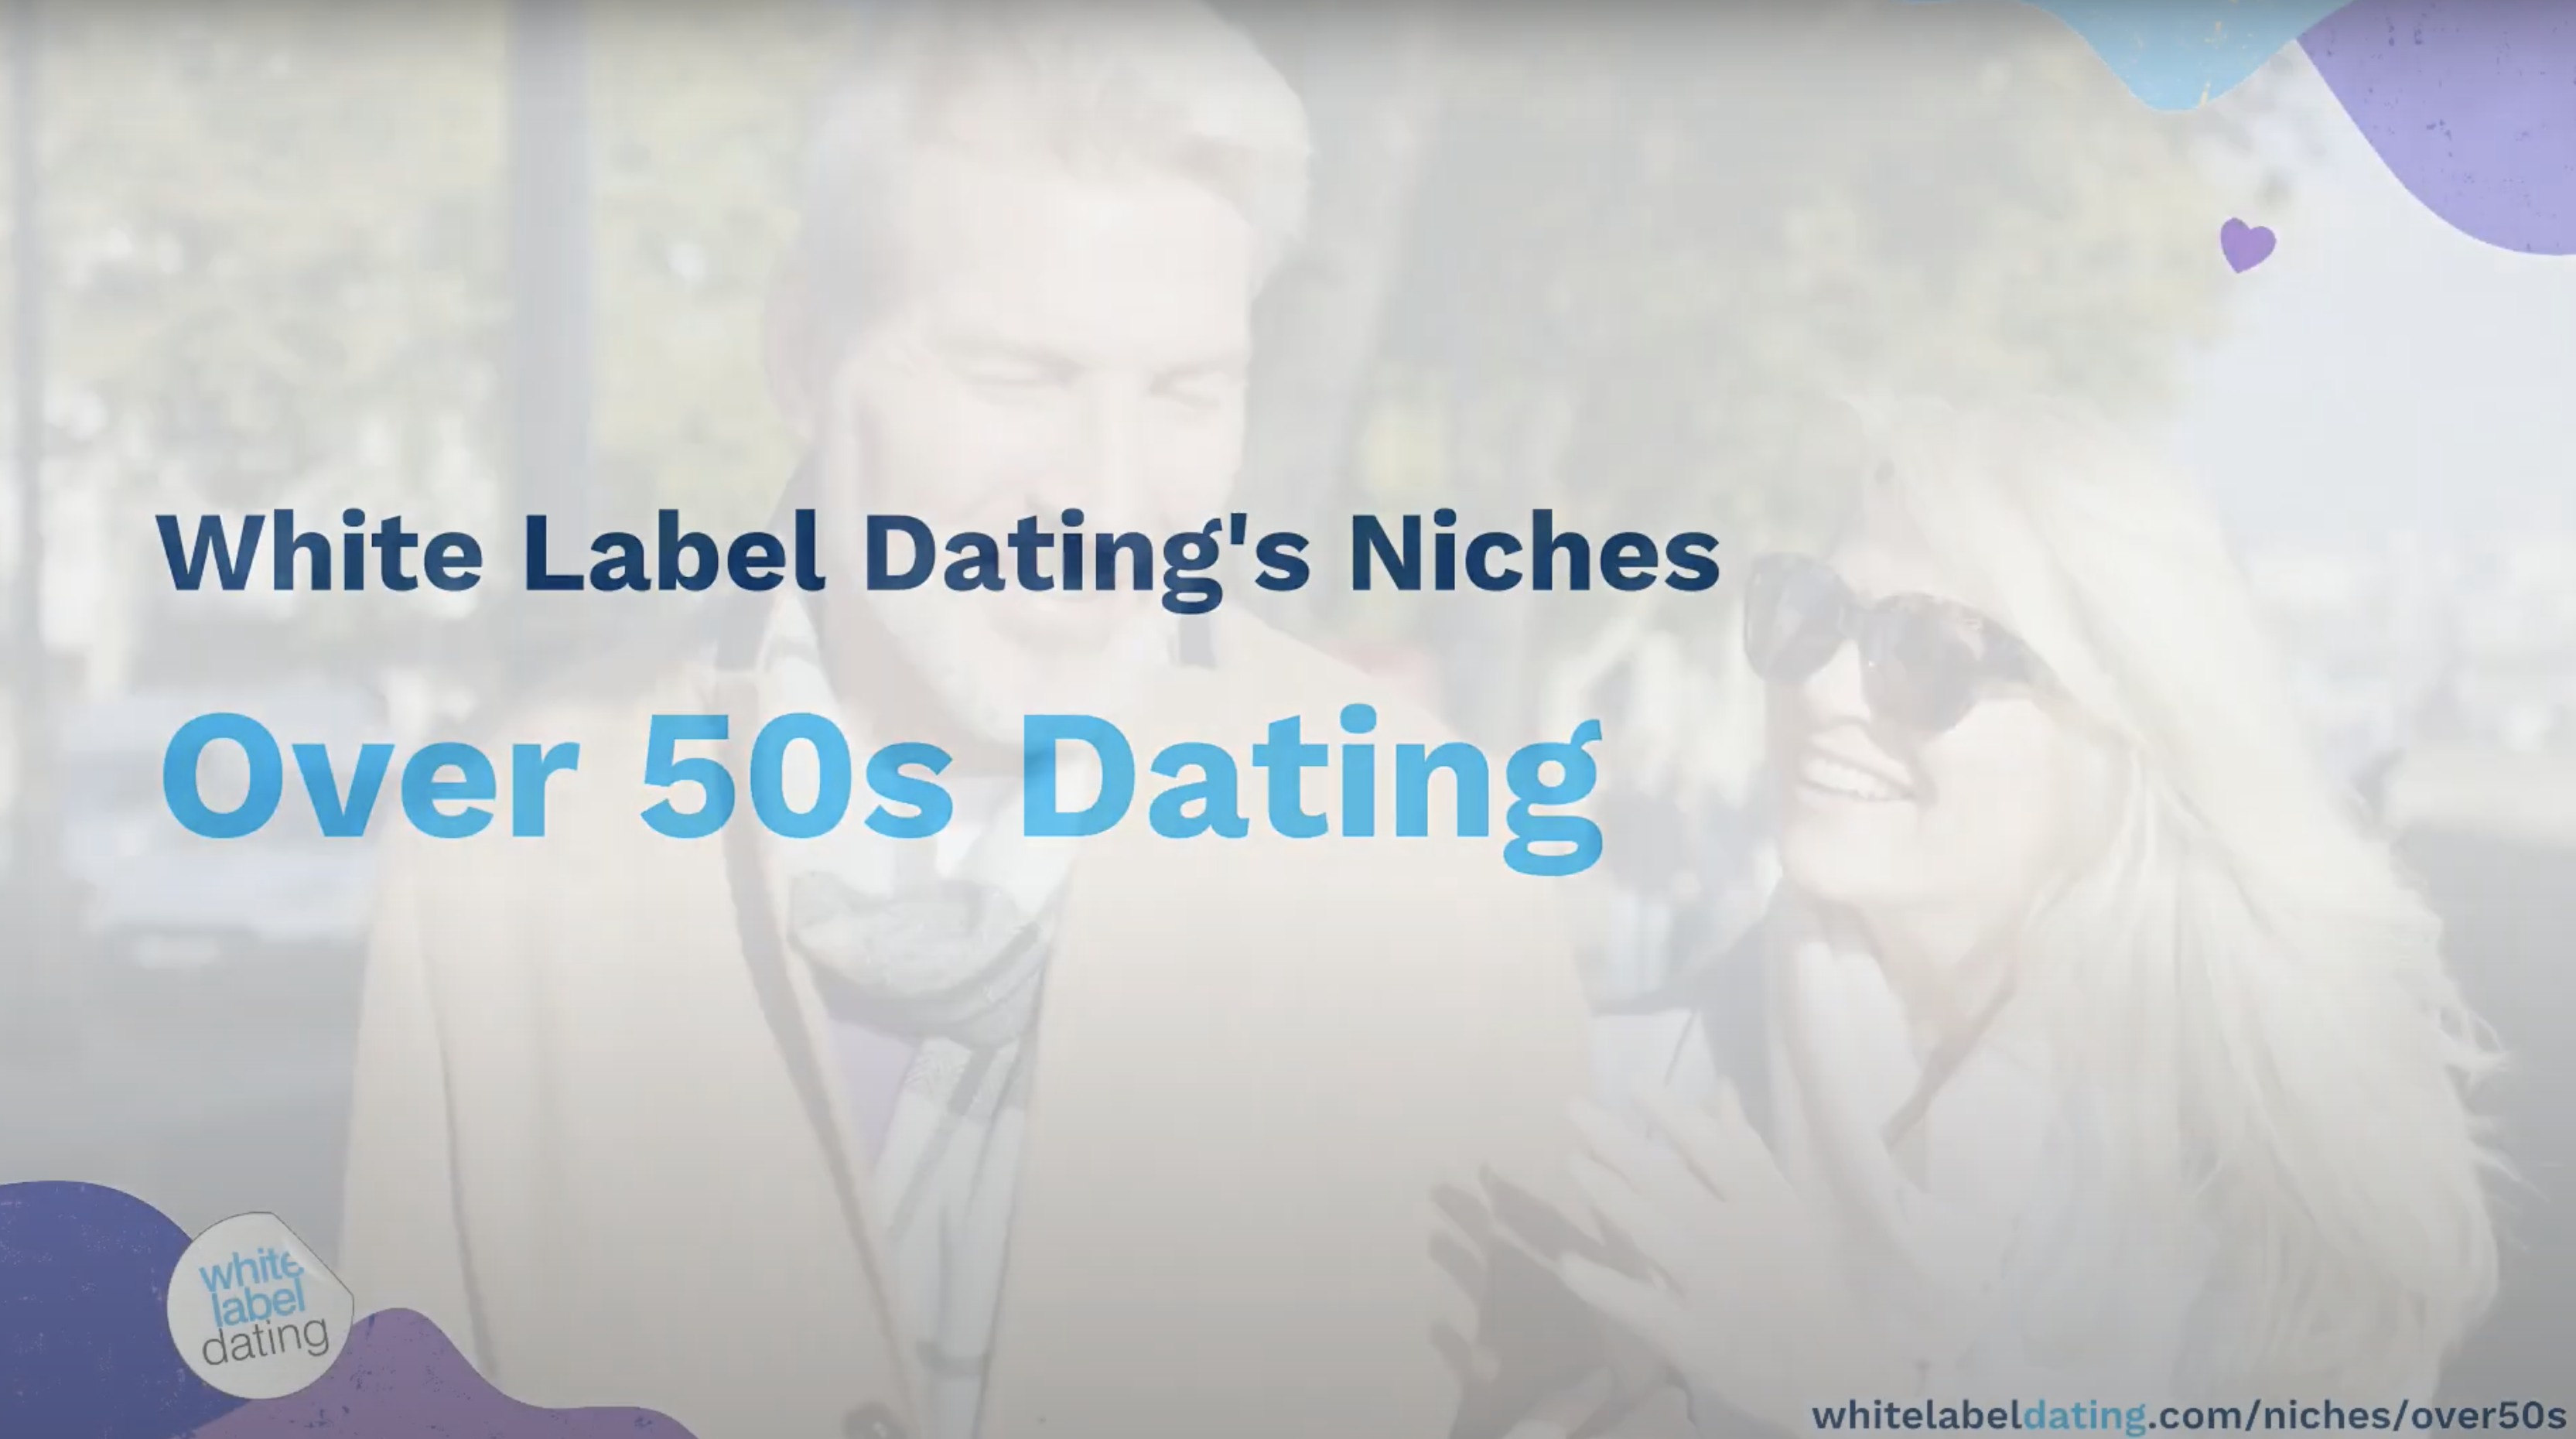 New Subscription Revenue Has Doubled On Our Over 50s Niche Since Launch